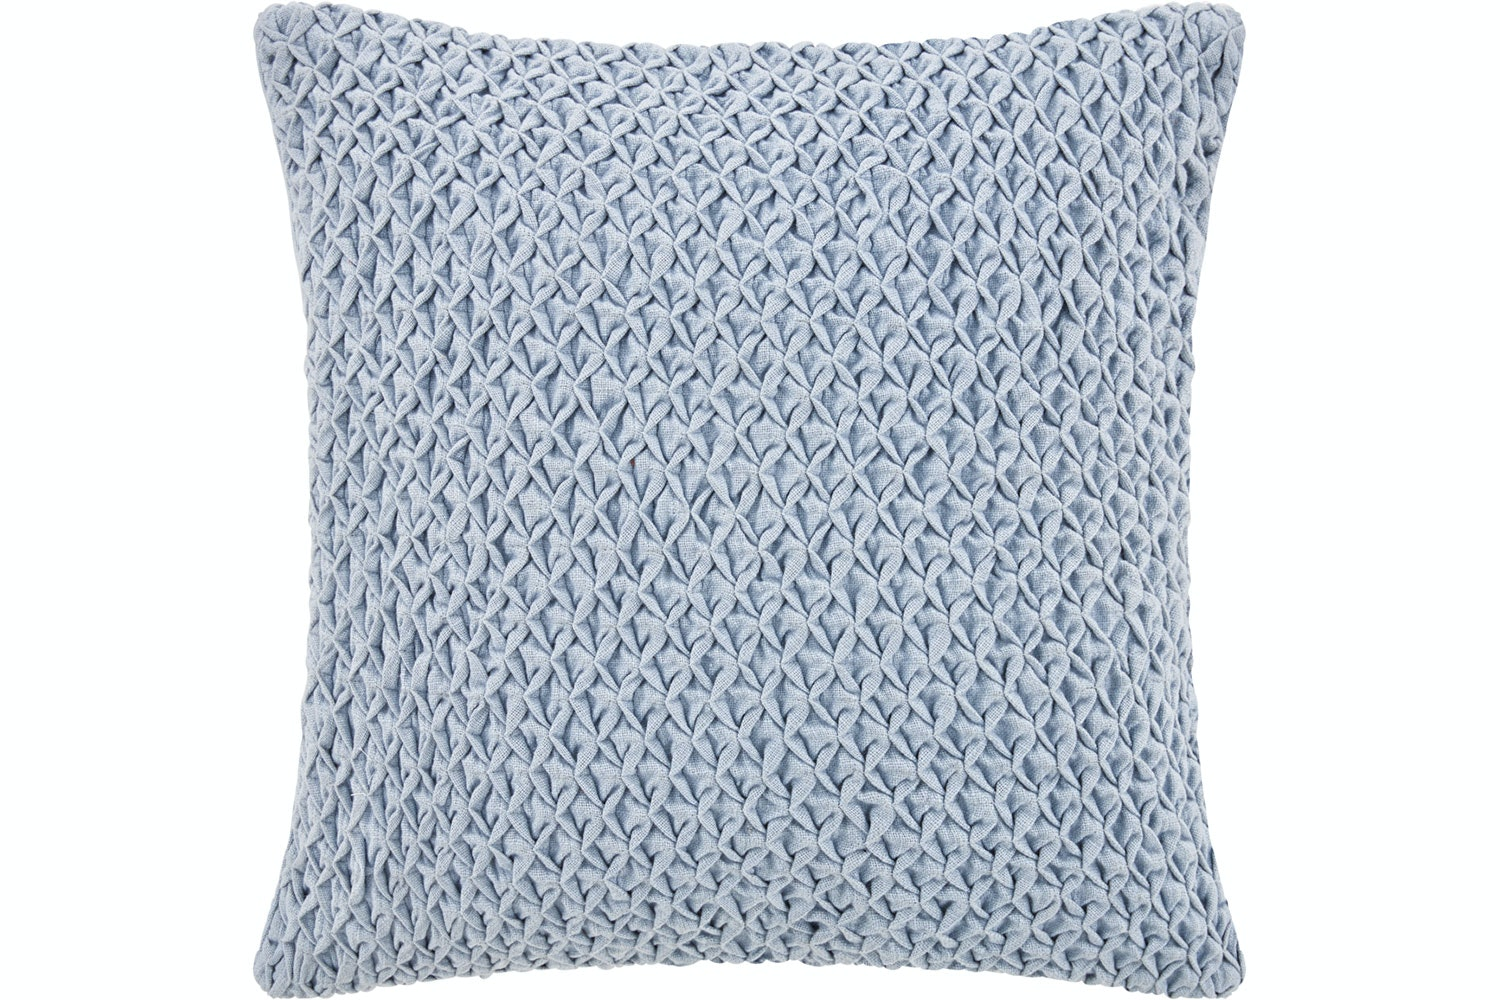 Braughton Rosette Chambray Square Cushion by Sheridan